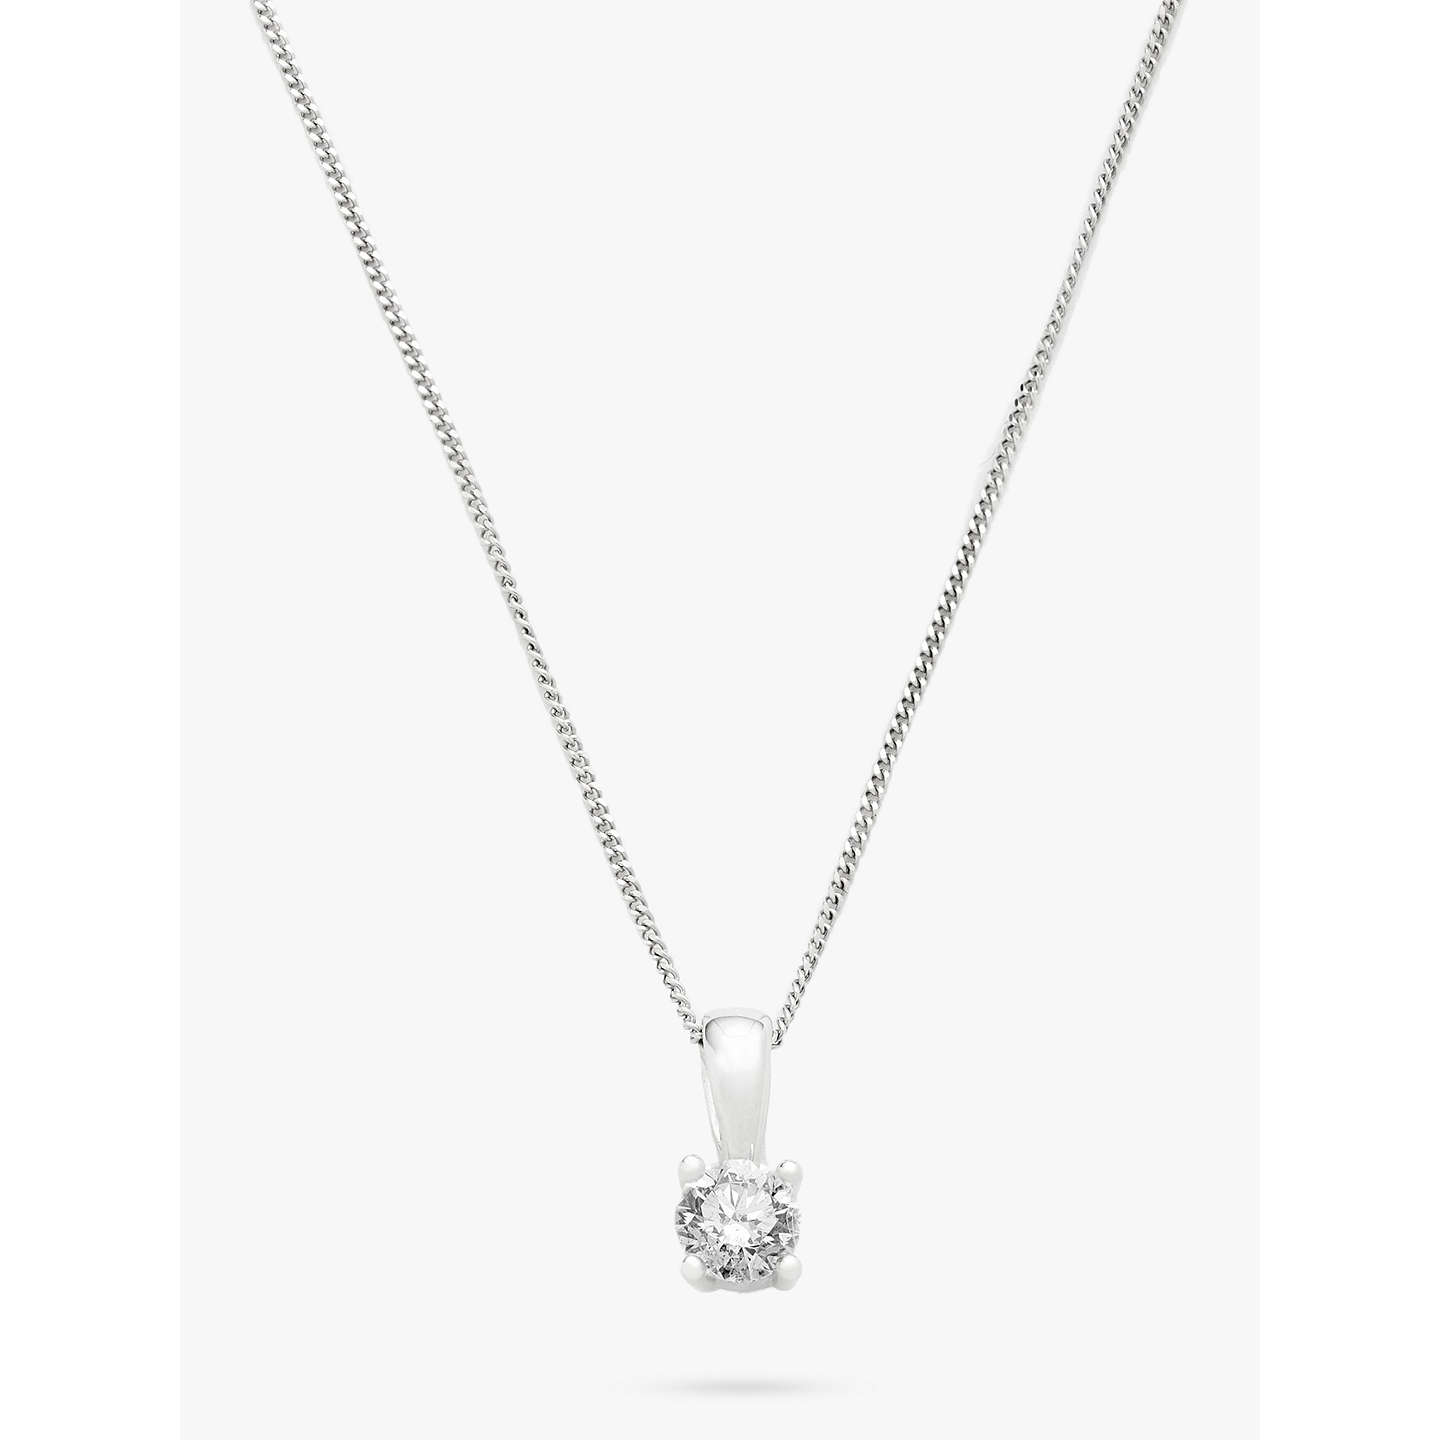 pendant click expand with item solitaire diamond necklace full enhancer forward sale to spring